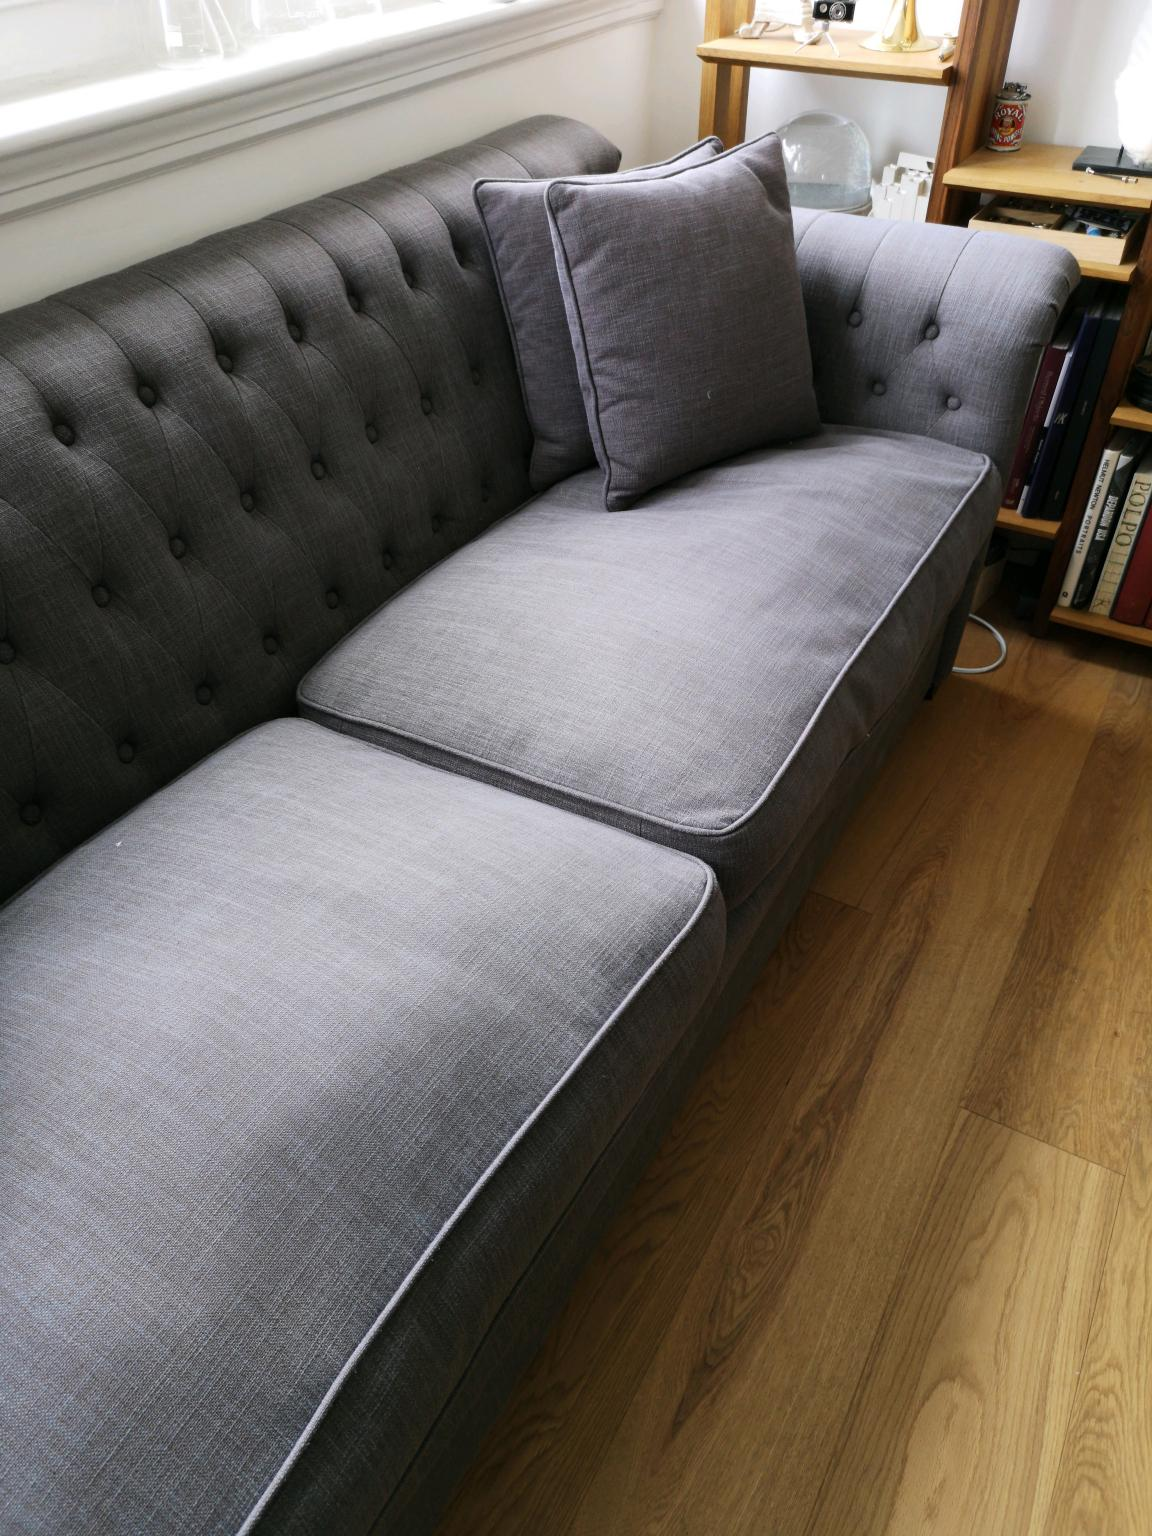 3 Seater Sofa From Neptune In Ec1 London For 500 00 For Sale Shpock